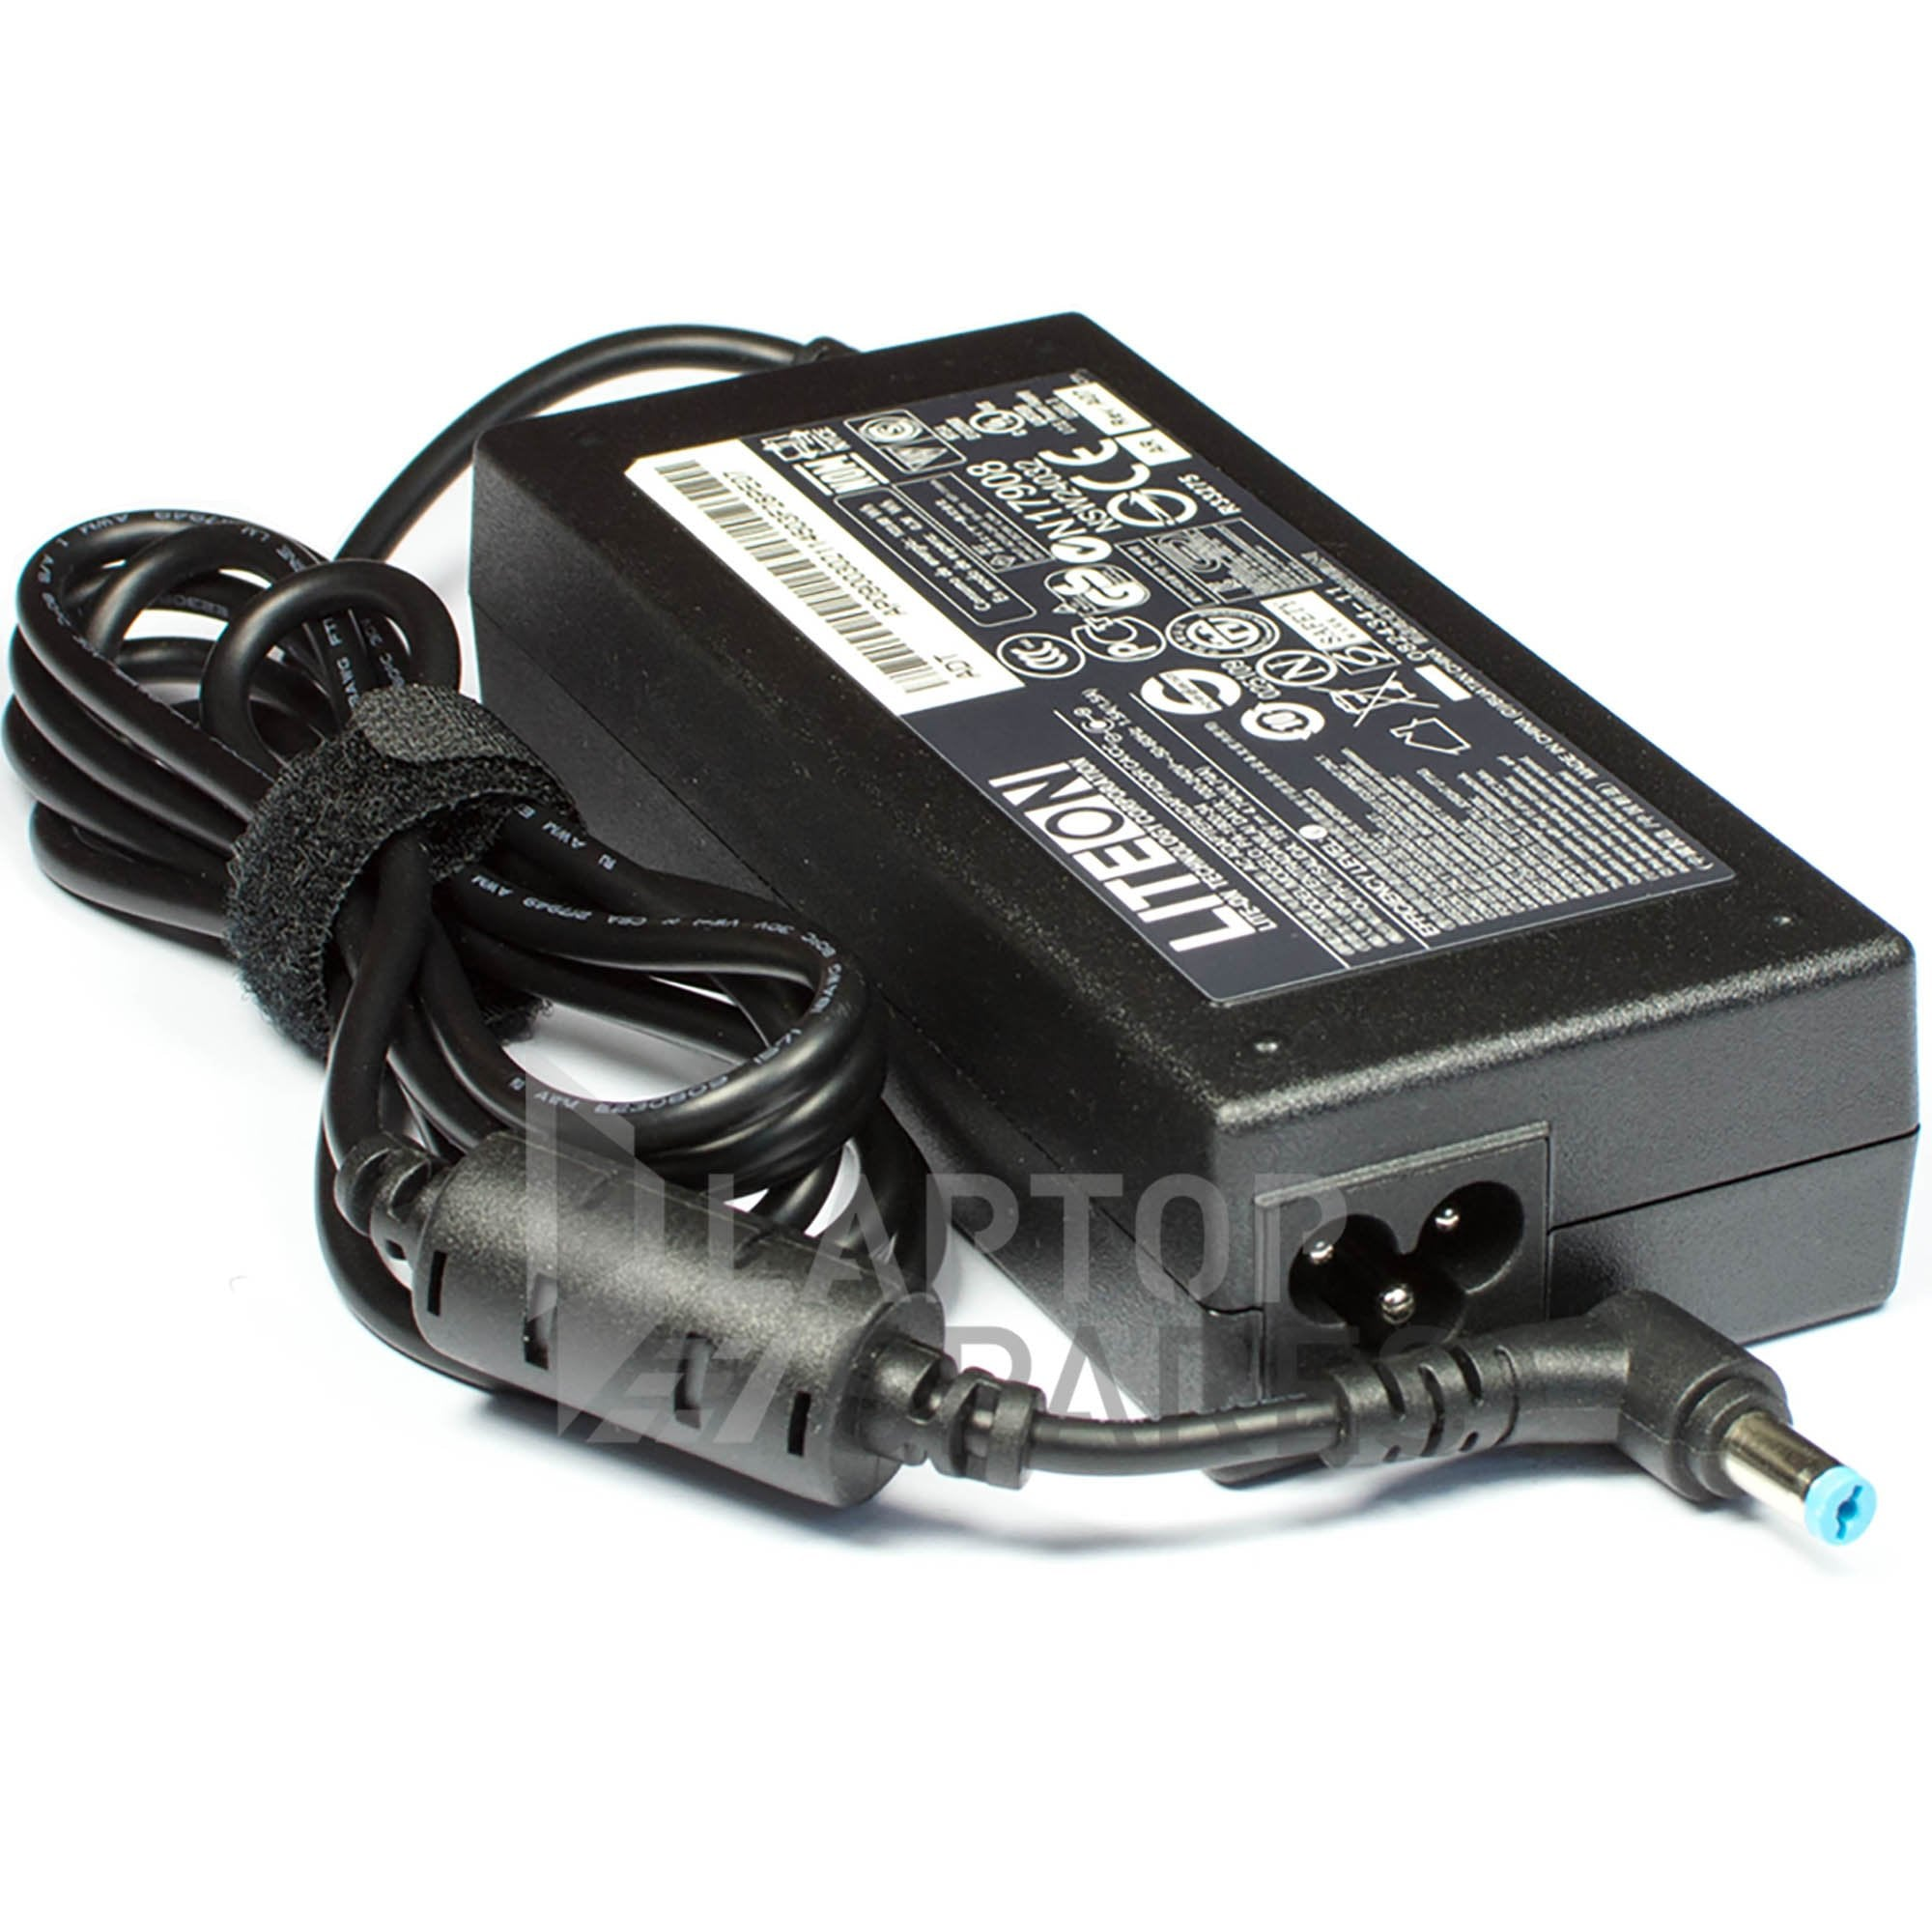 Acer Aspire 9400 6920 7745 Laptop AC Adapter Charger